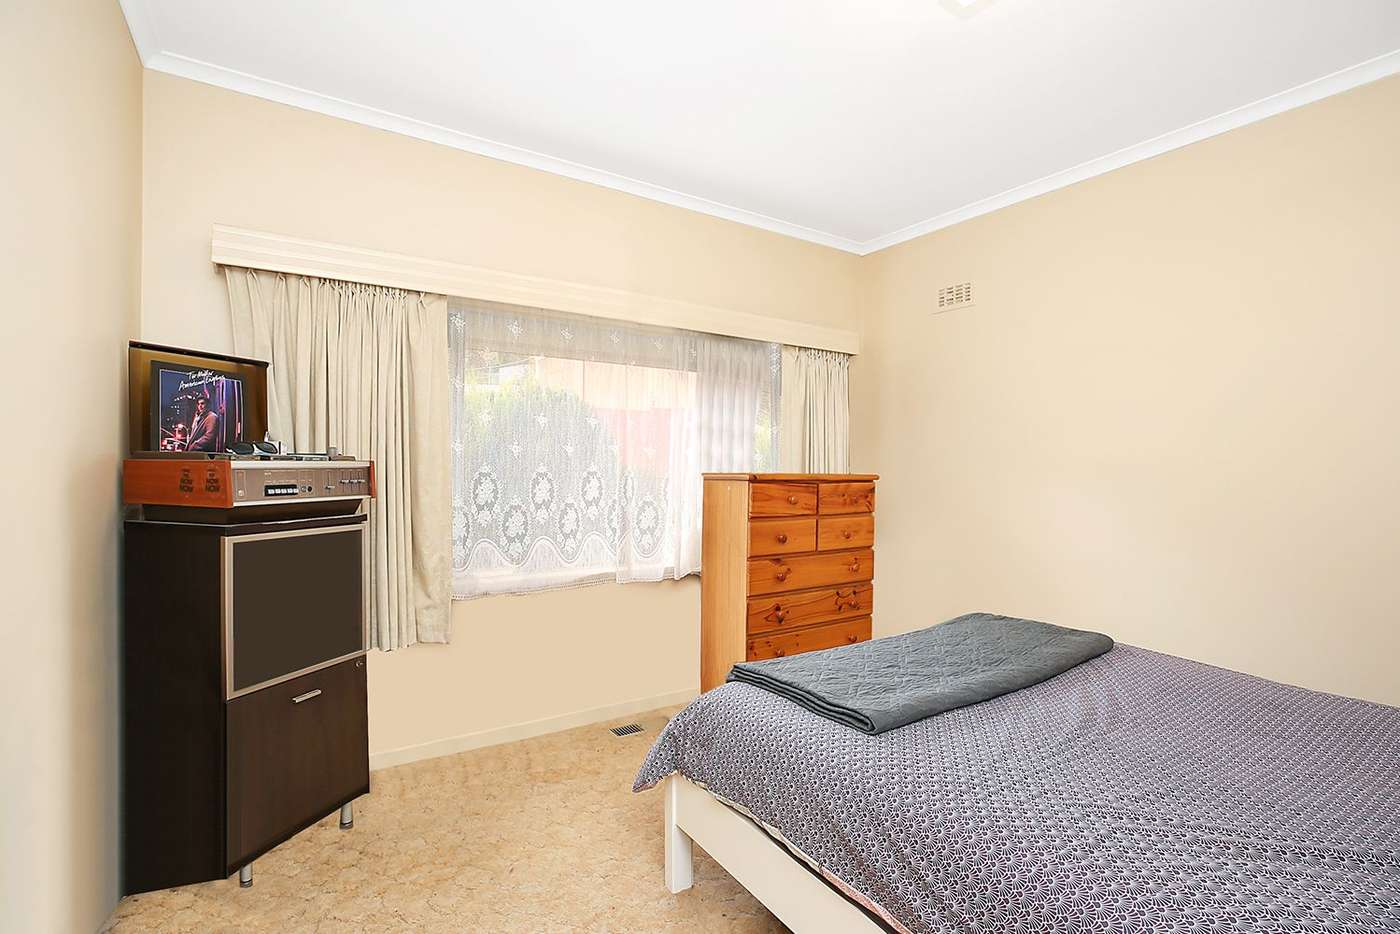 Sixth view of Homely house listing, 1C Errey Street, Camperdown VIC 3260